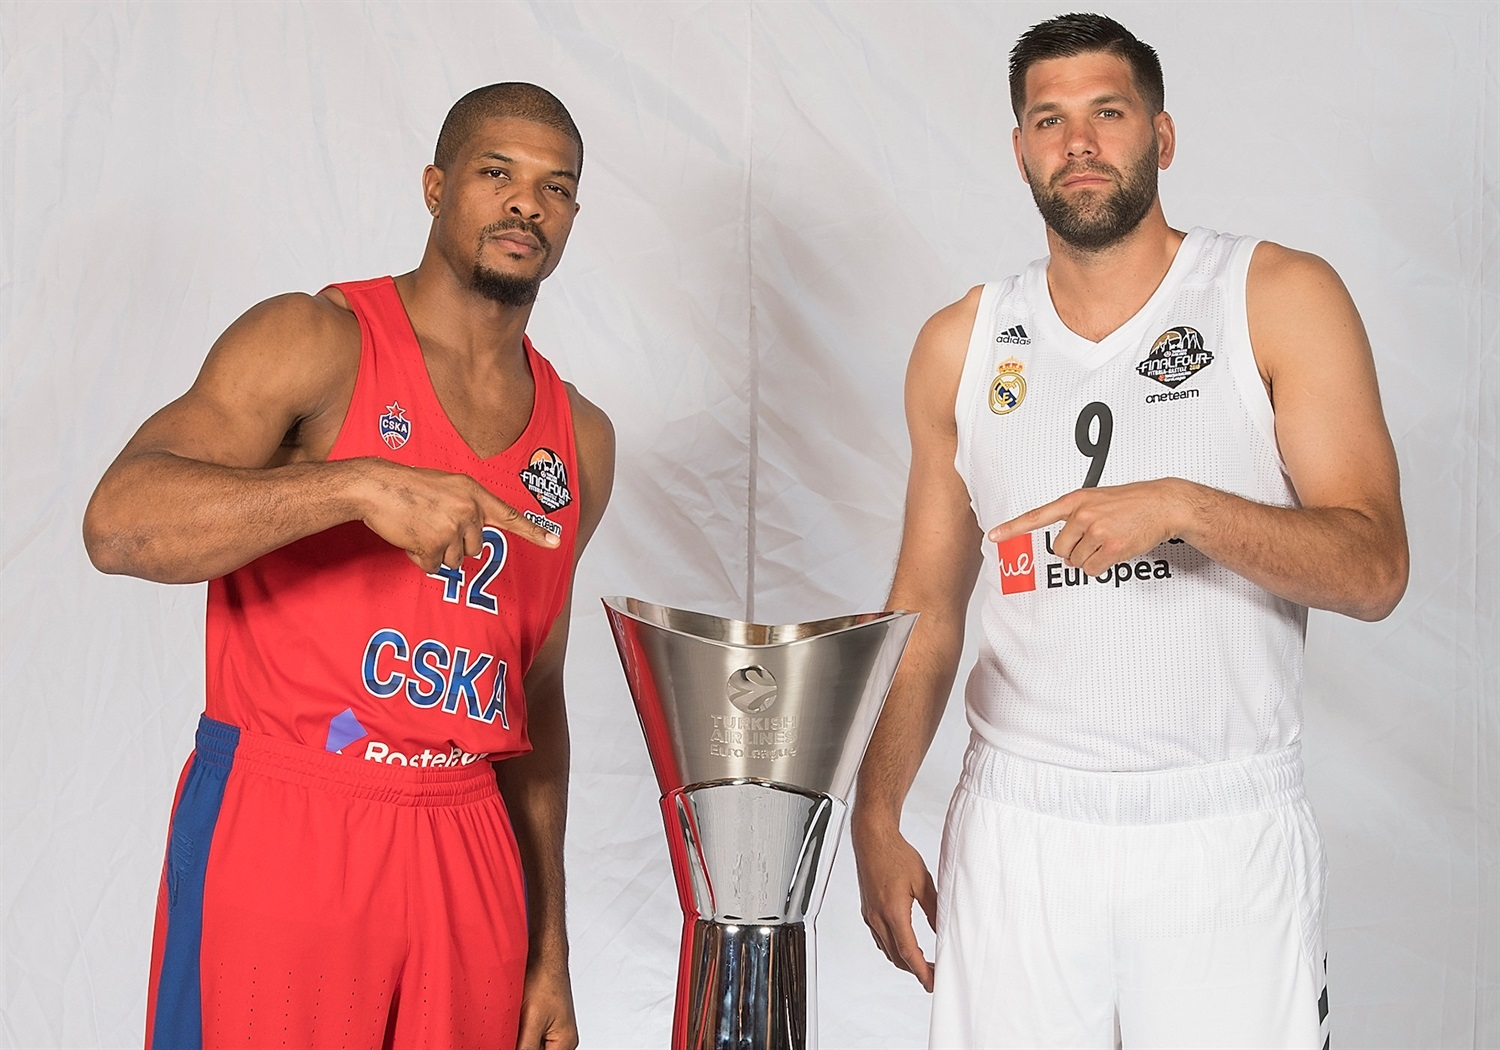 Kyle Hines and Felipe Reyes - Teams Captains Photo Session - Final Four Vitoria-Gasteiz 2019 - EB18